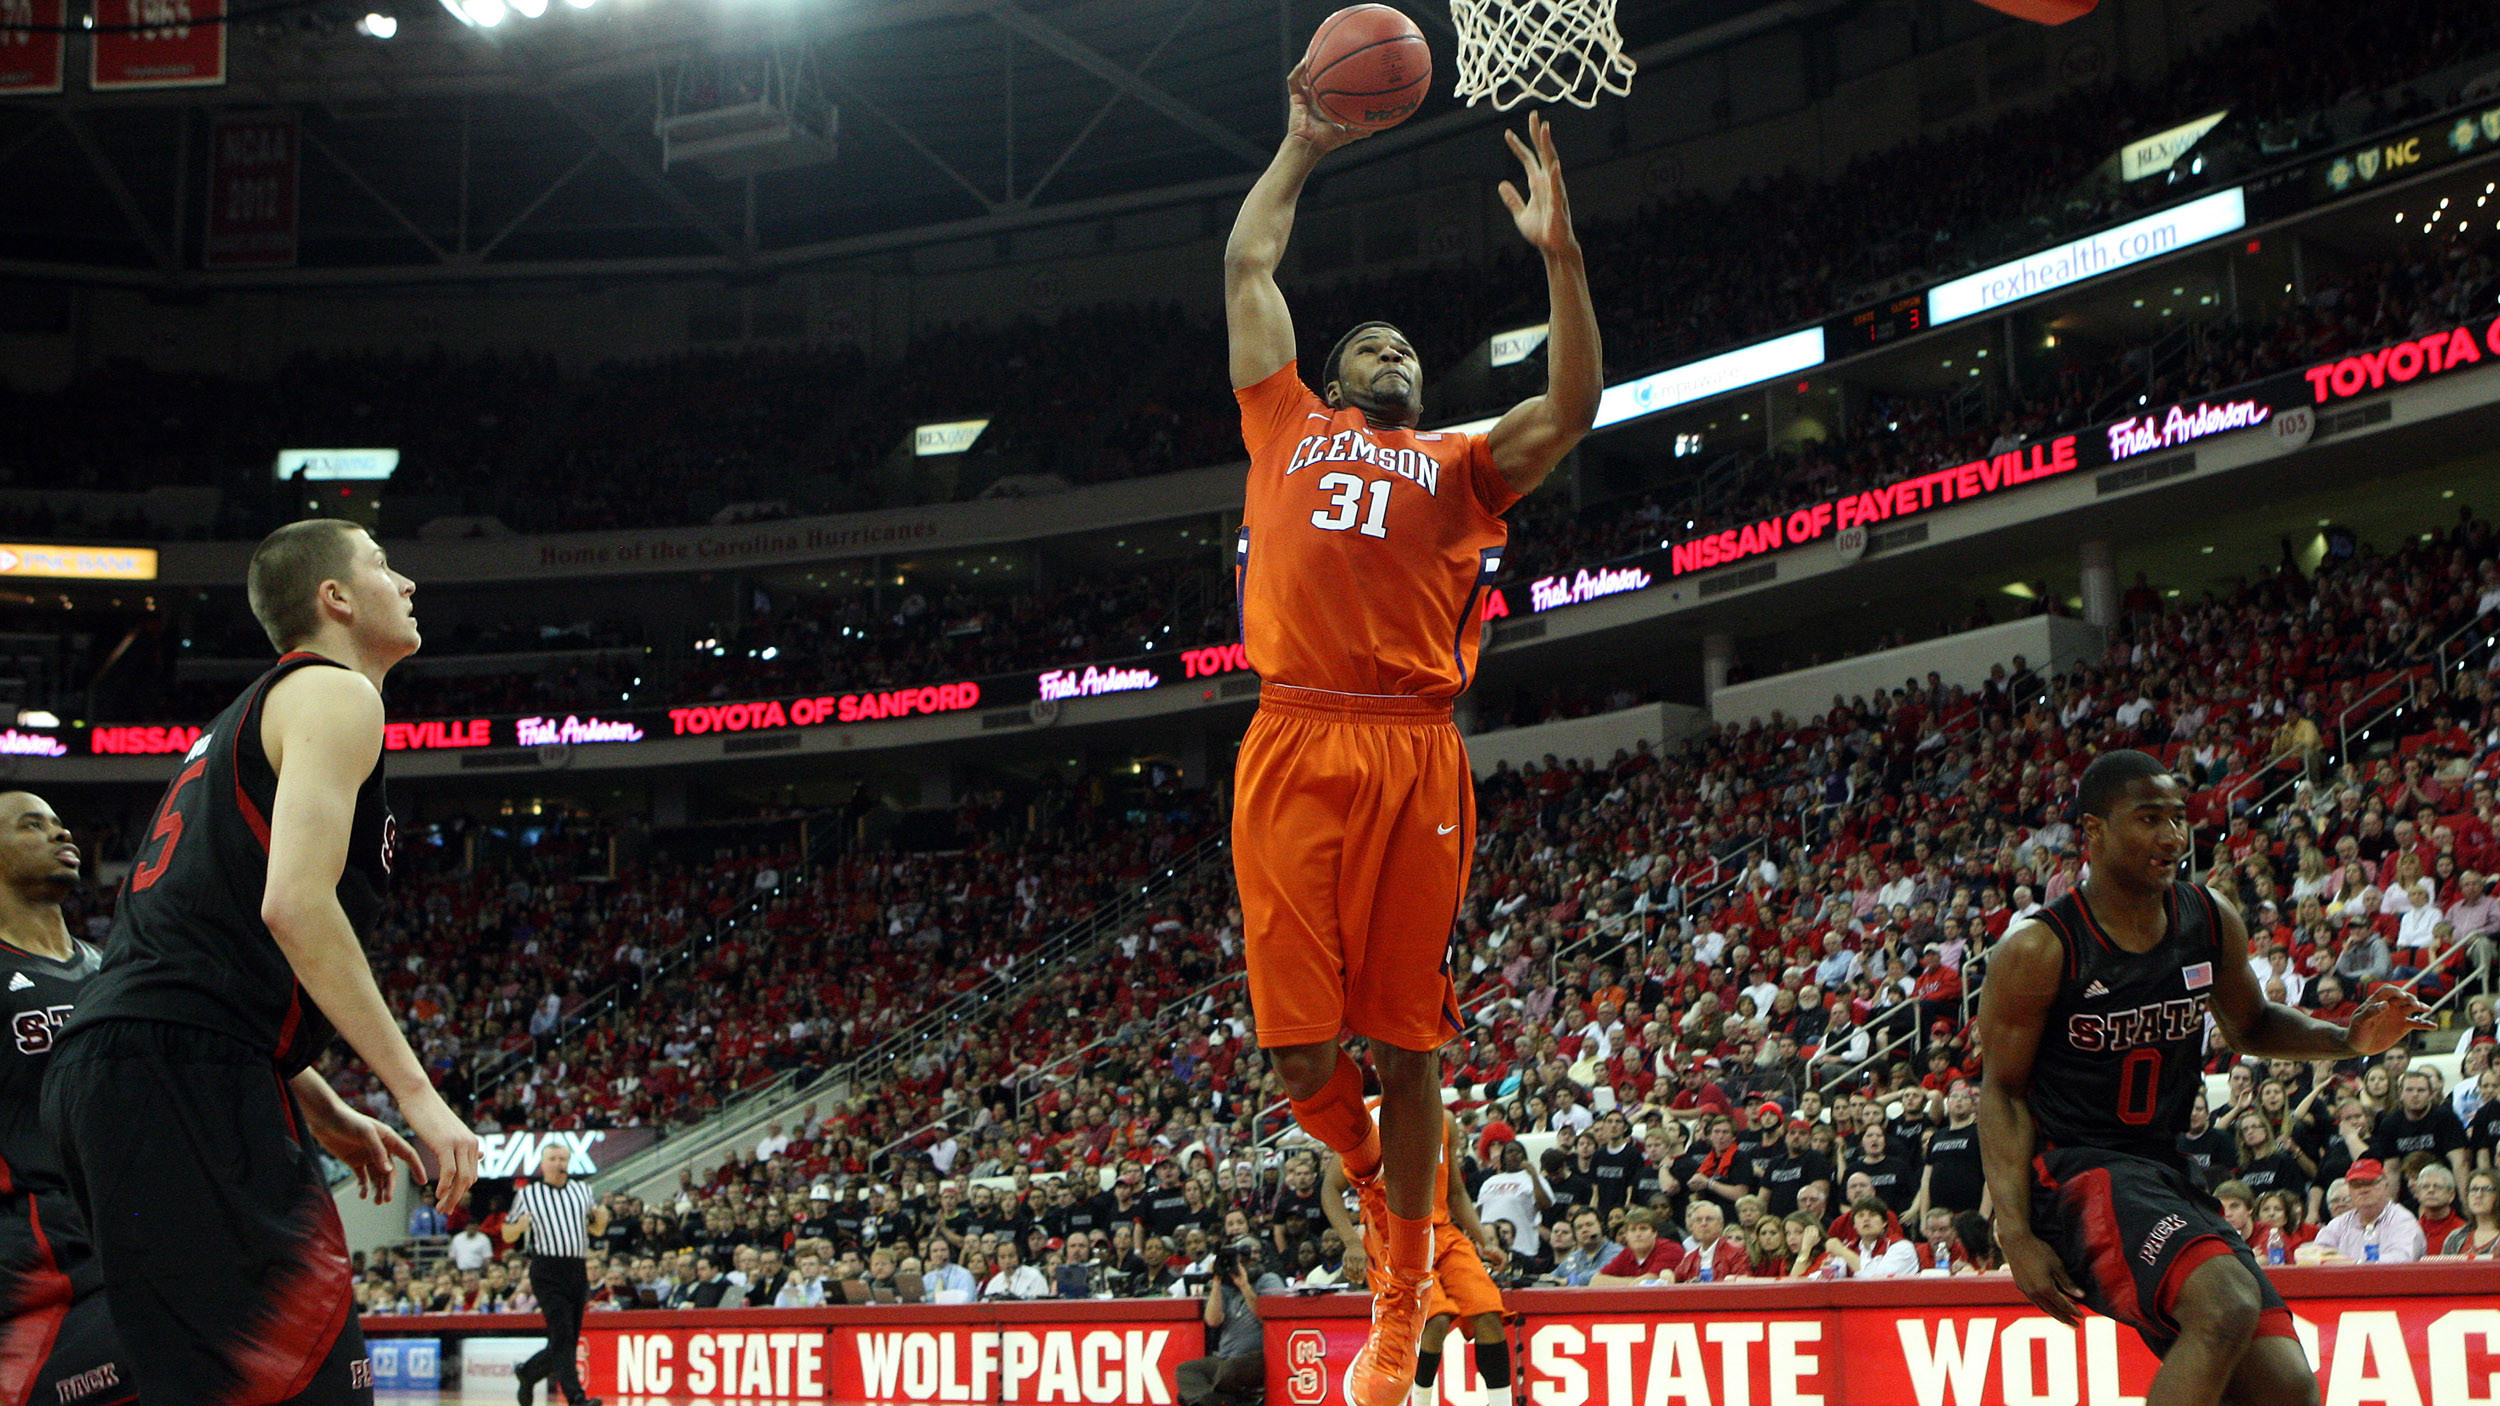 Clemson's Comeback Effort Falls Short in 66-62 Loss at No. 14/15 NC State